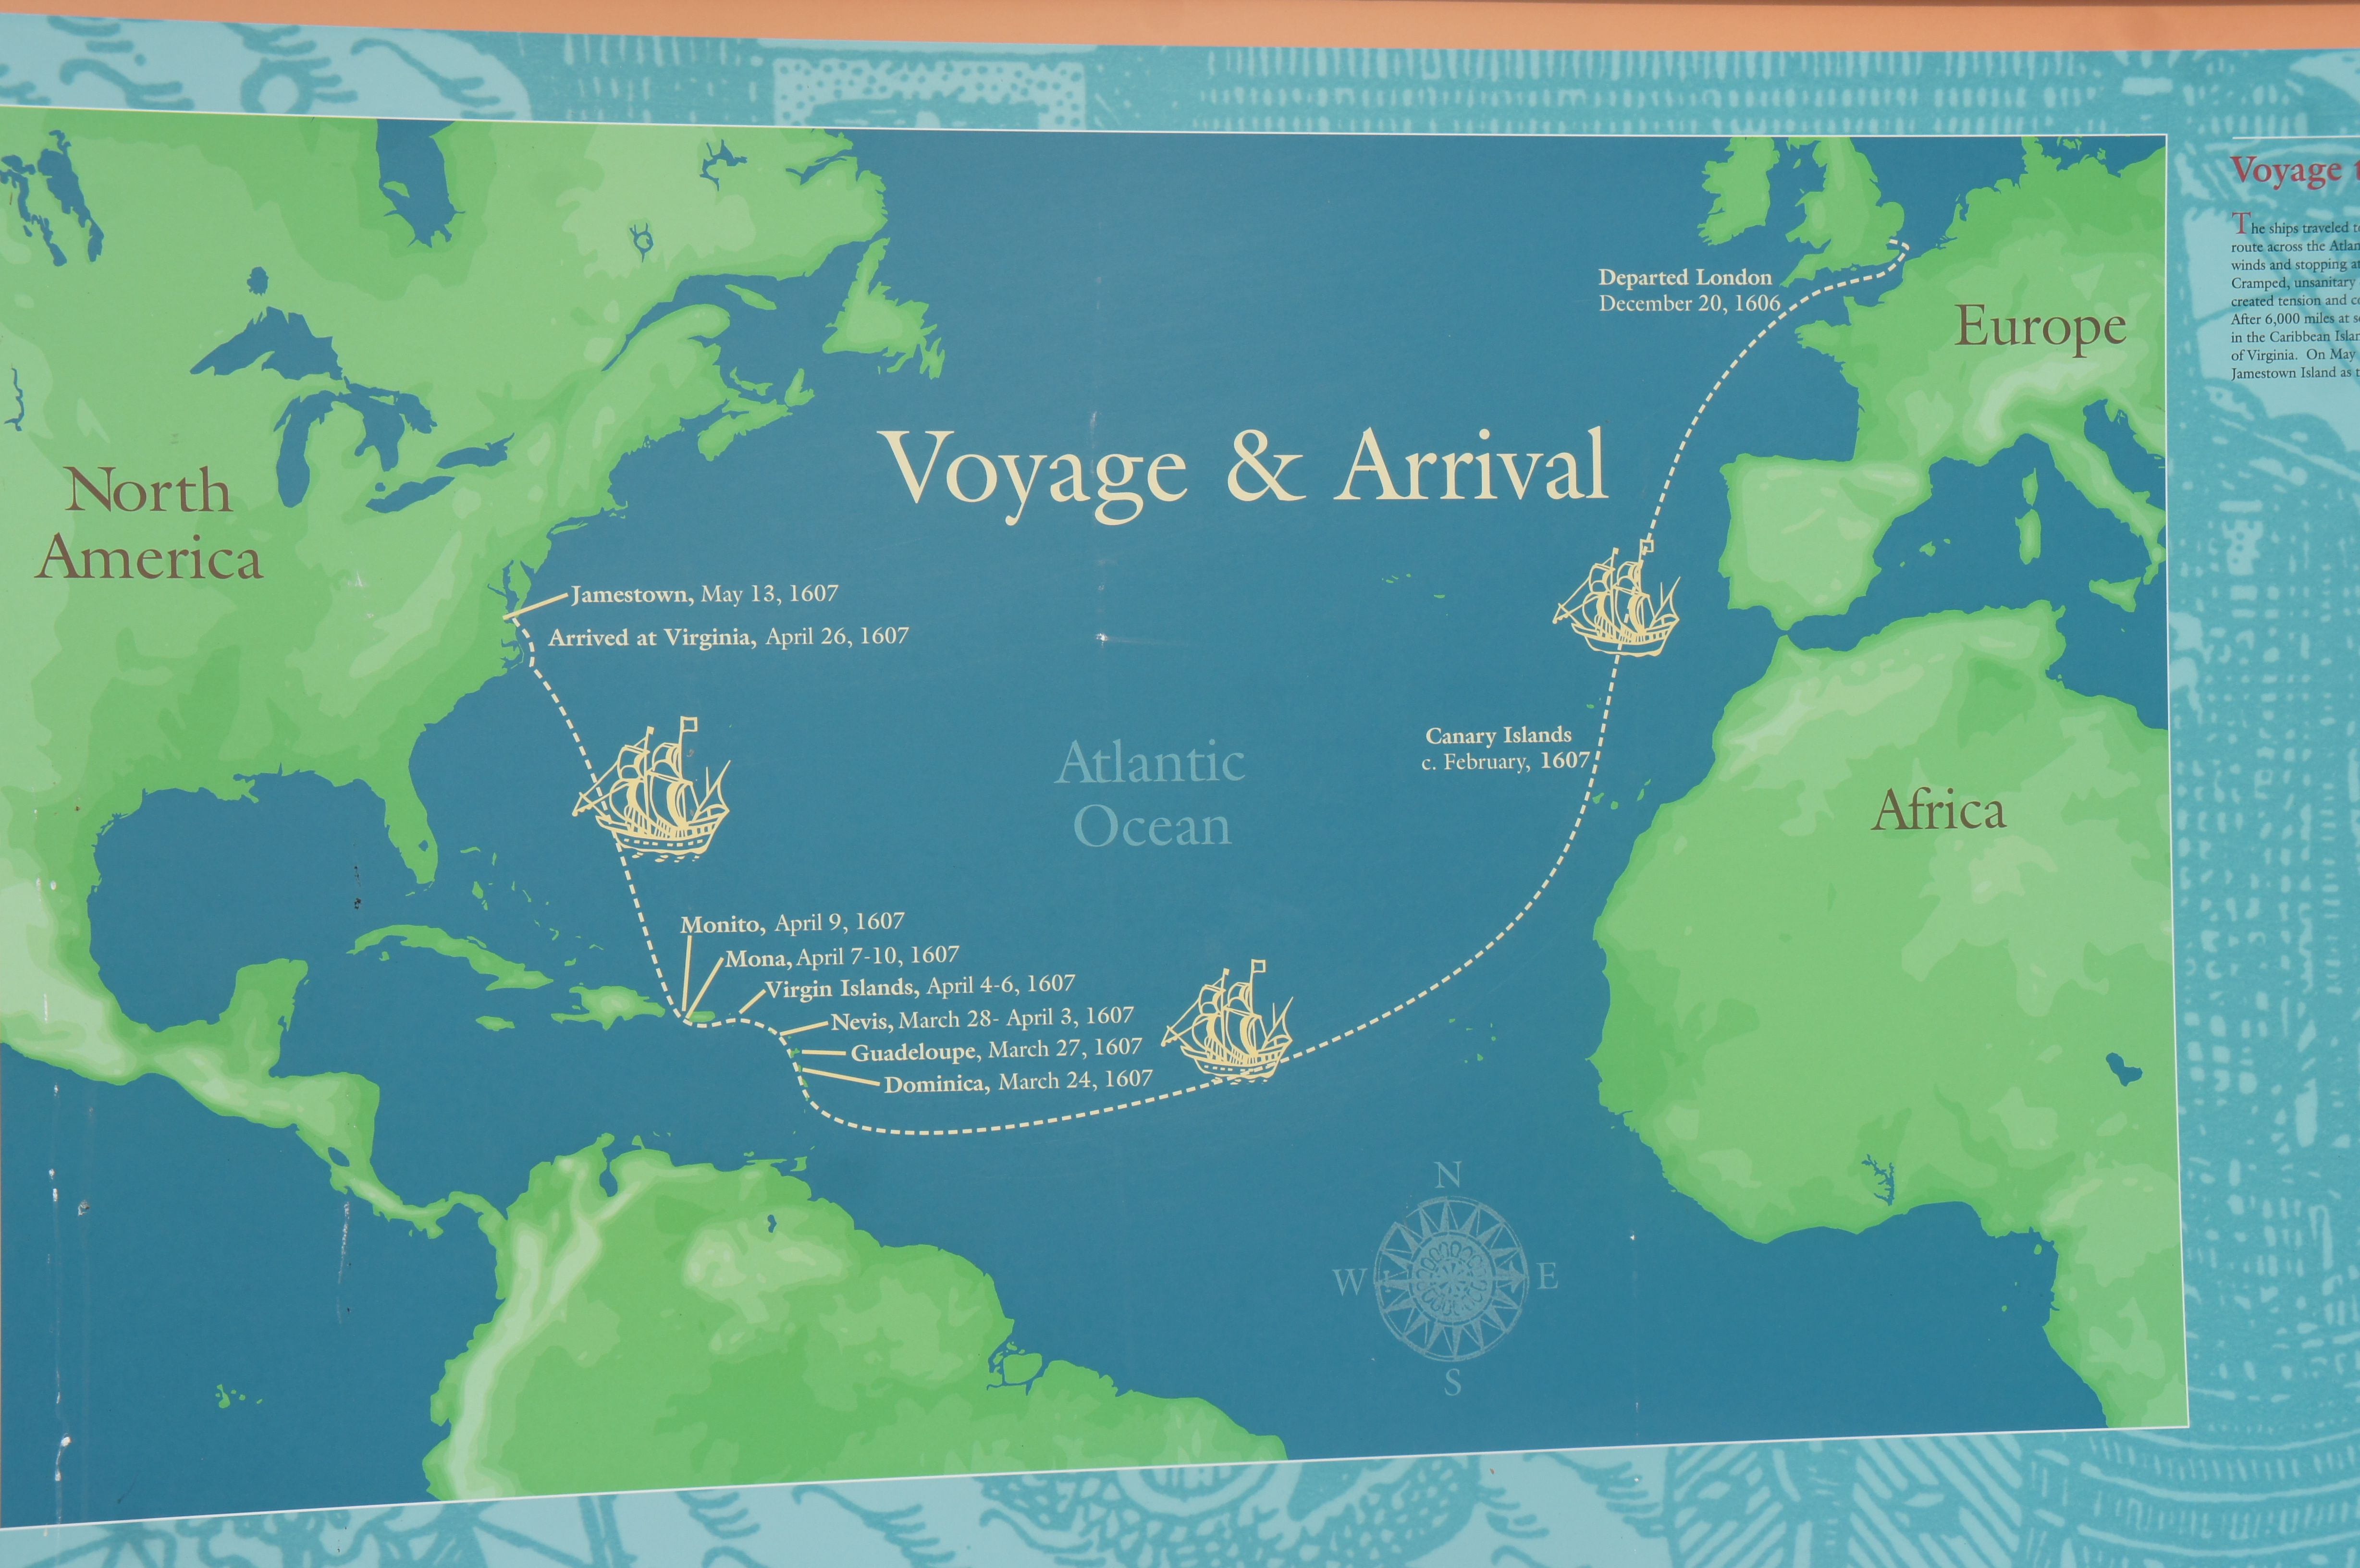 A map marks the voyage from Britain to Jamestown Virginia in 1607